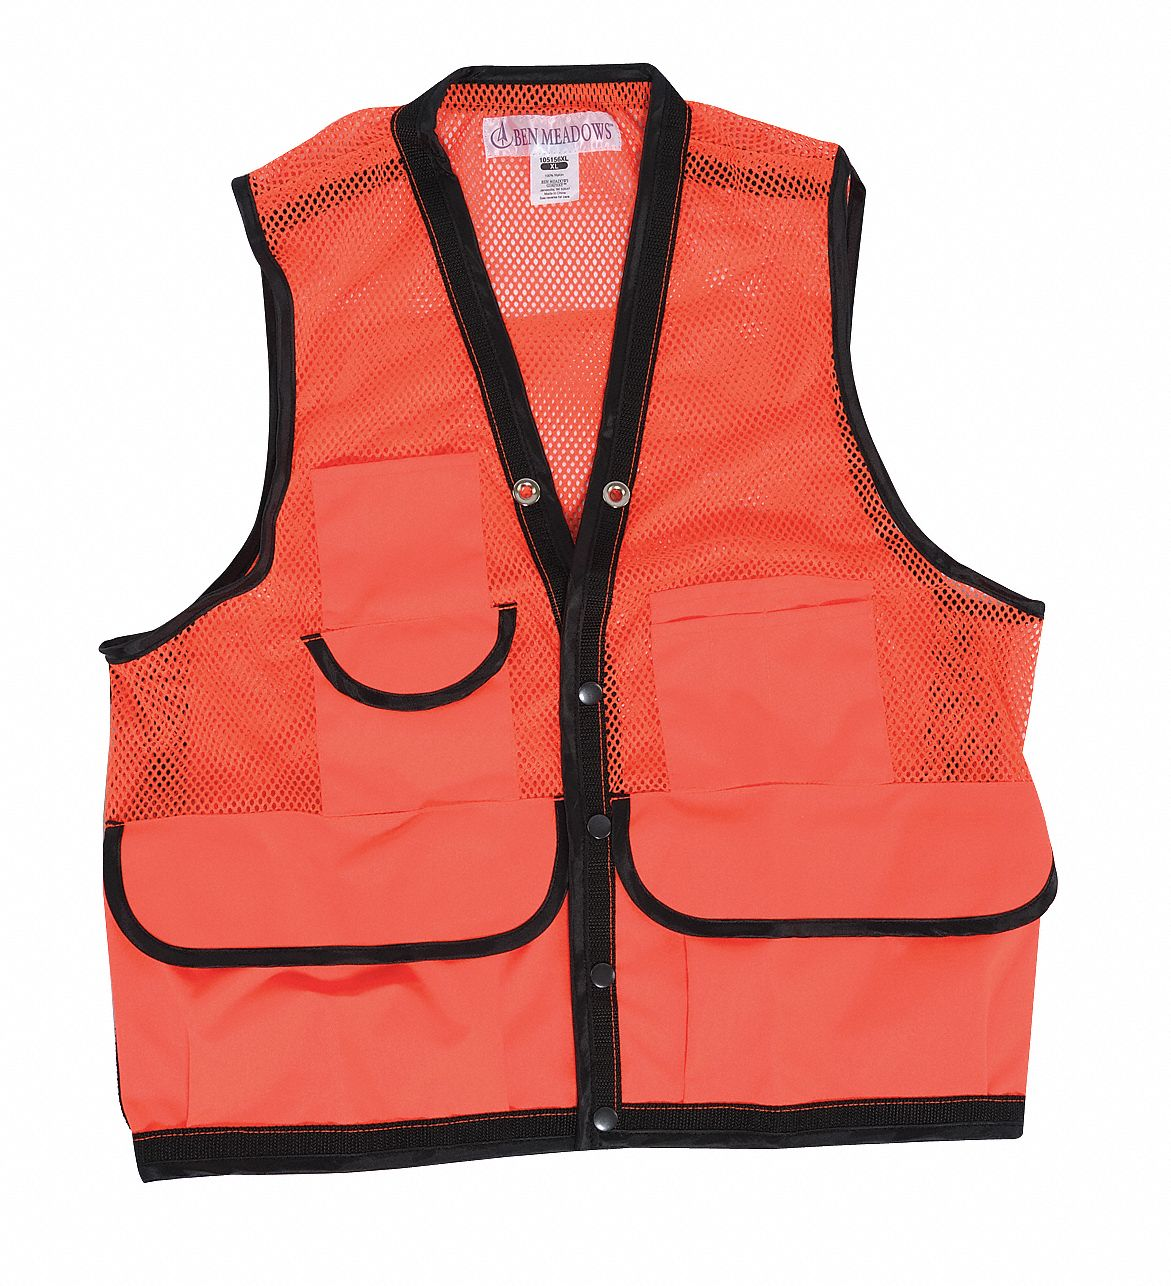 Orange Vest,  XL,  Cordura with Polypropylene Webbing,  Fits Chest Size 43 in to 45 in,  10 Pockets